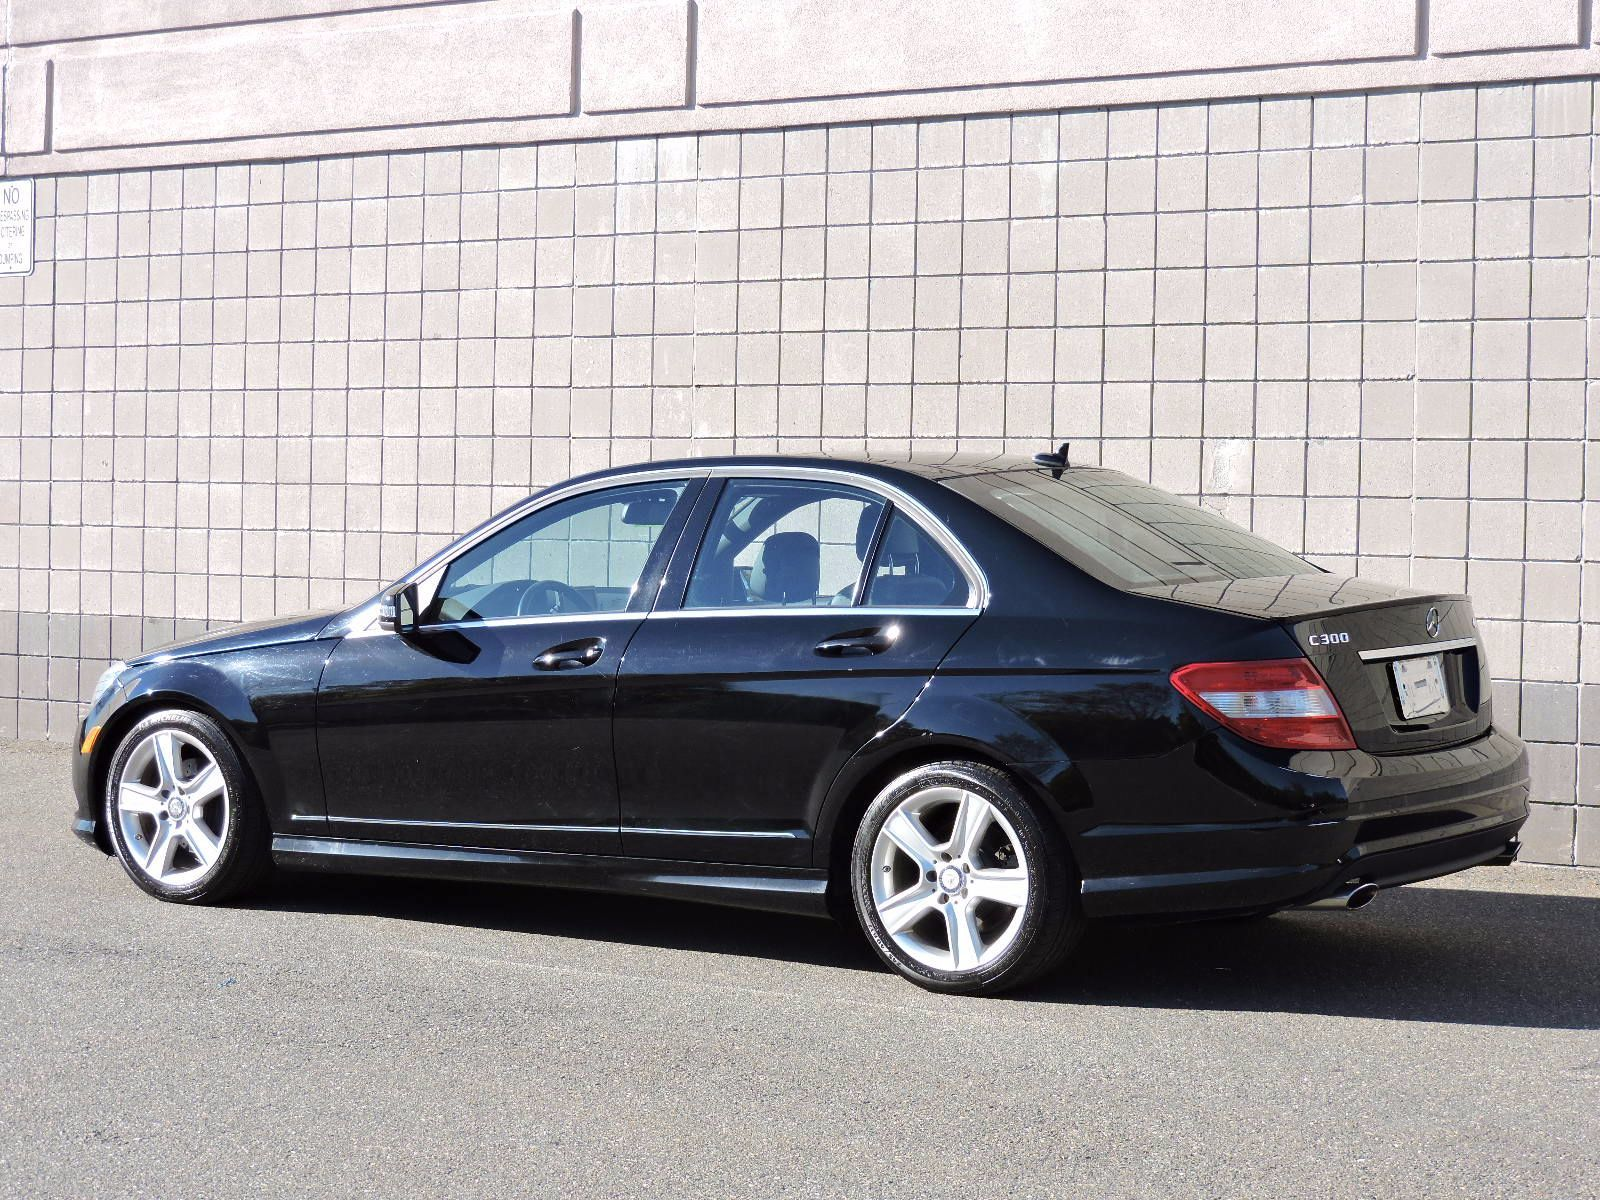 used 2011 mercedes benz c300 c300 sport at auto house usa. Black Bedroom Furniture Sets. Home Design Ideas